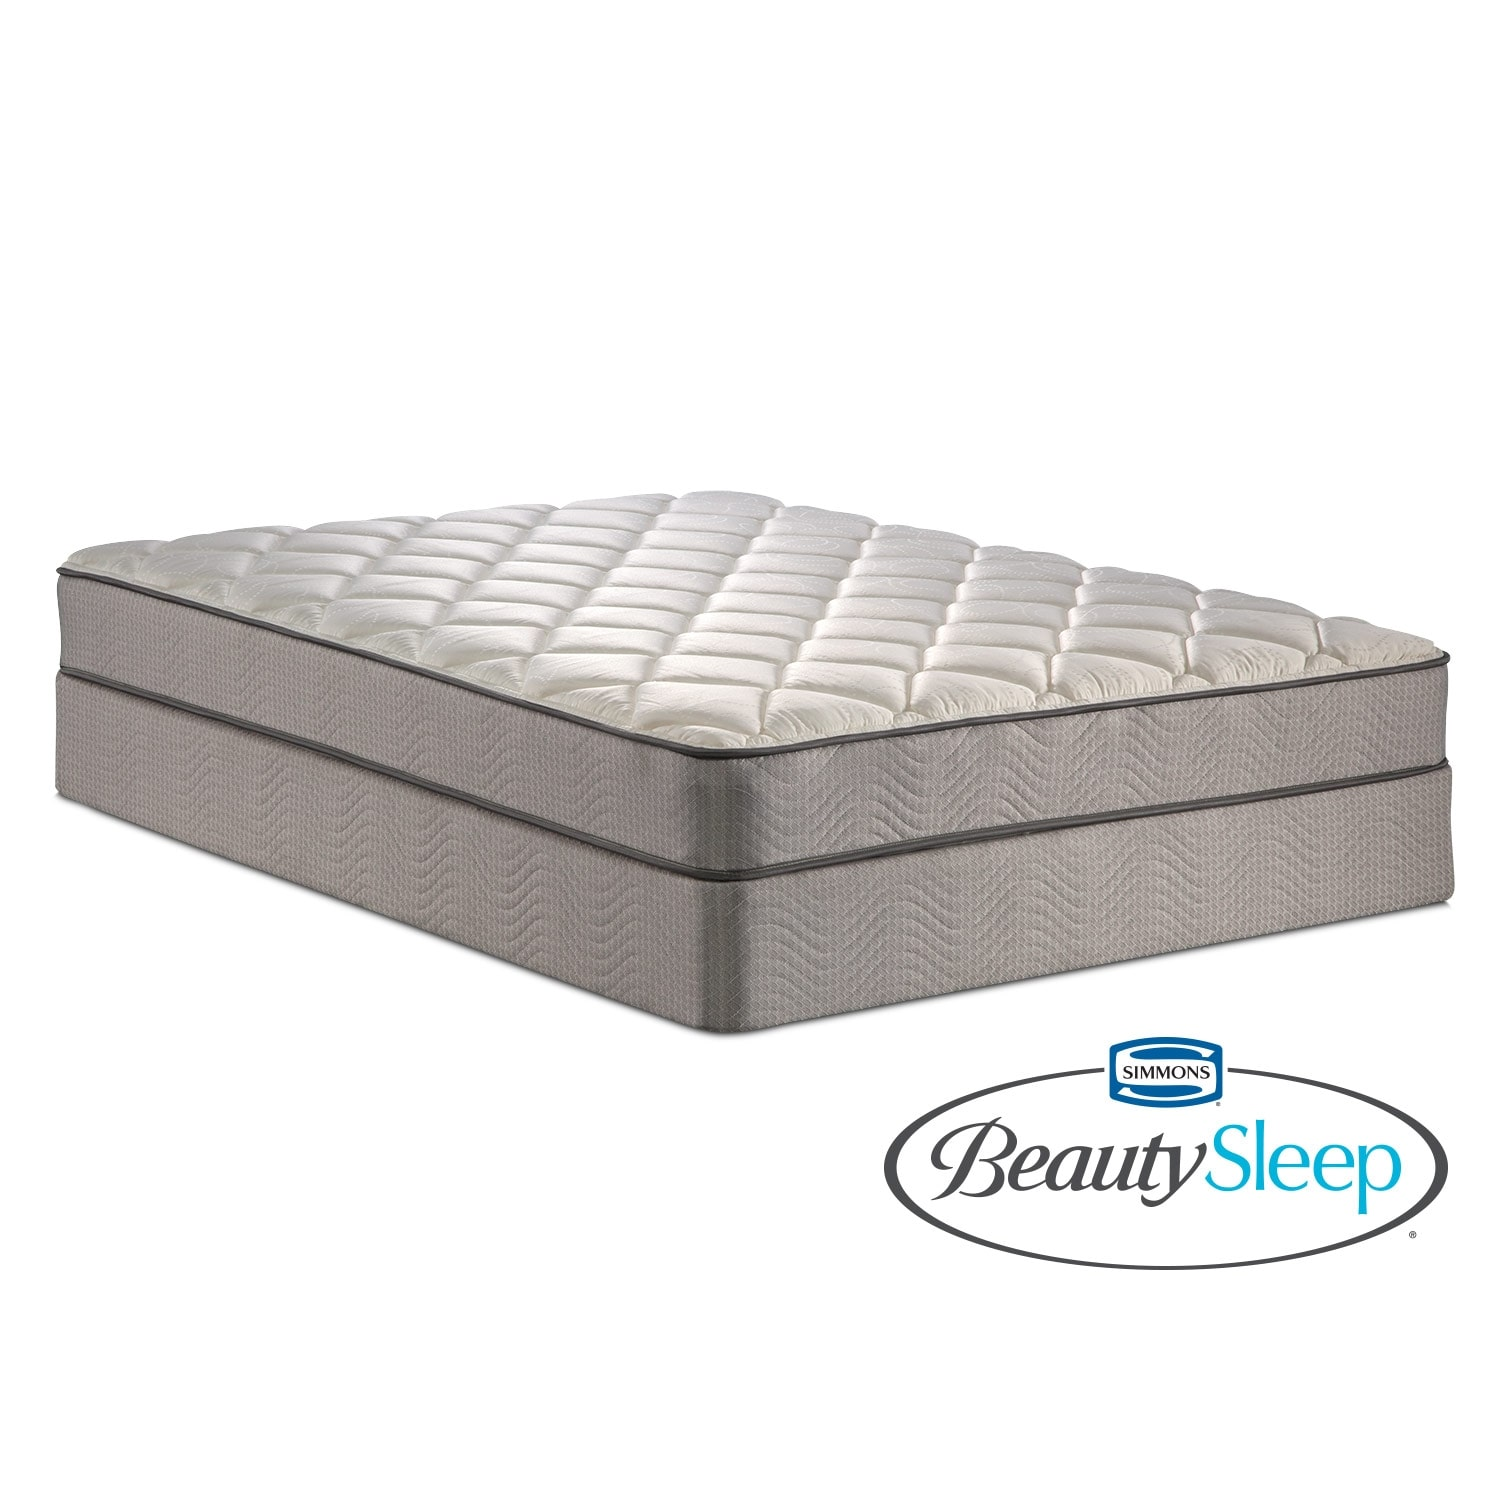 Mattresses and Bedding - Gates Way Queen Mattress/Split Foundation Set